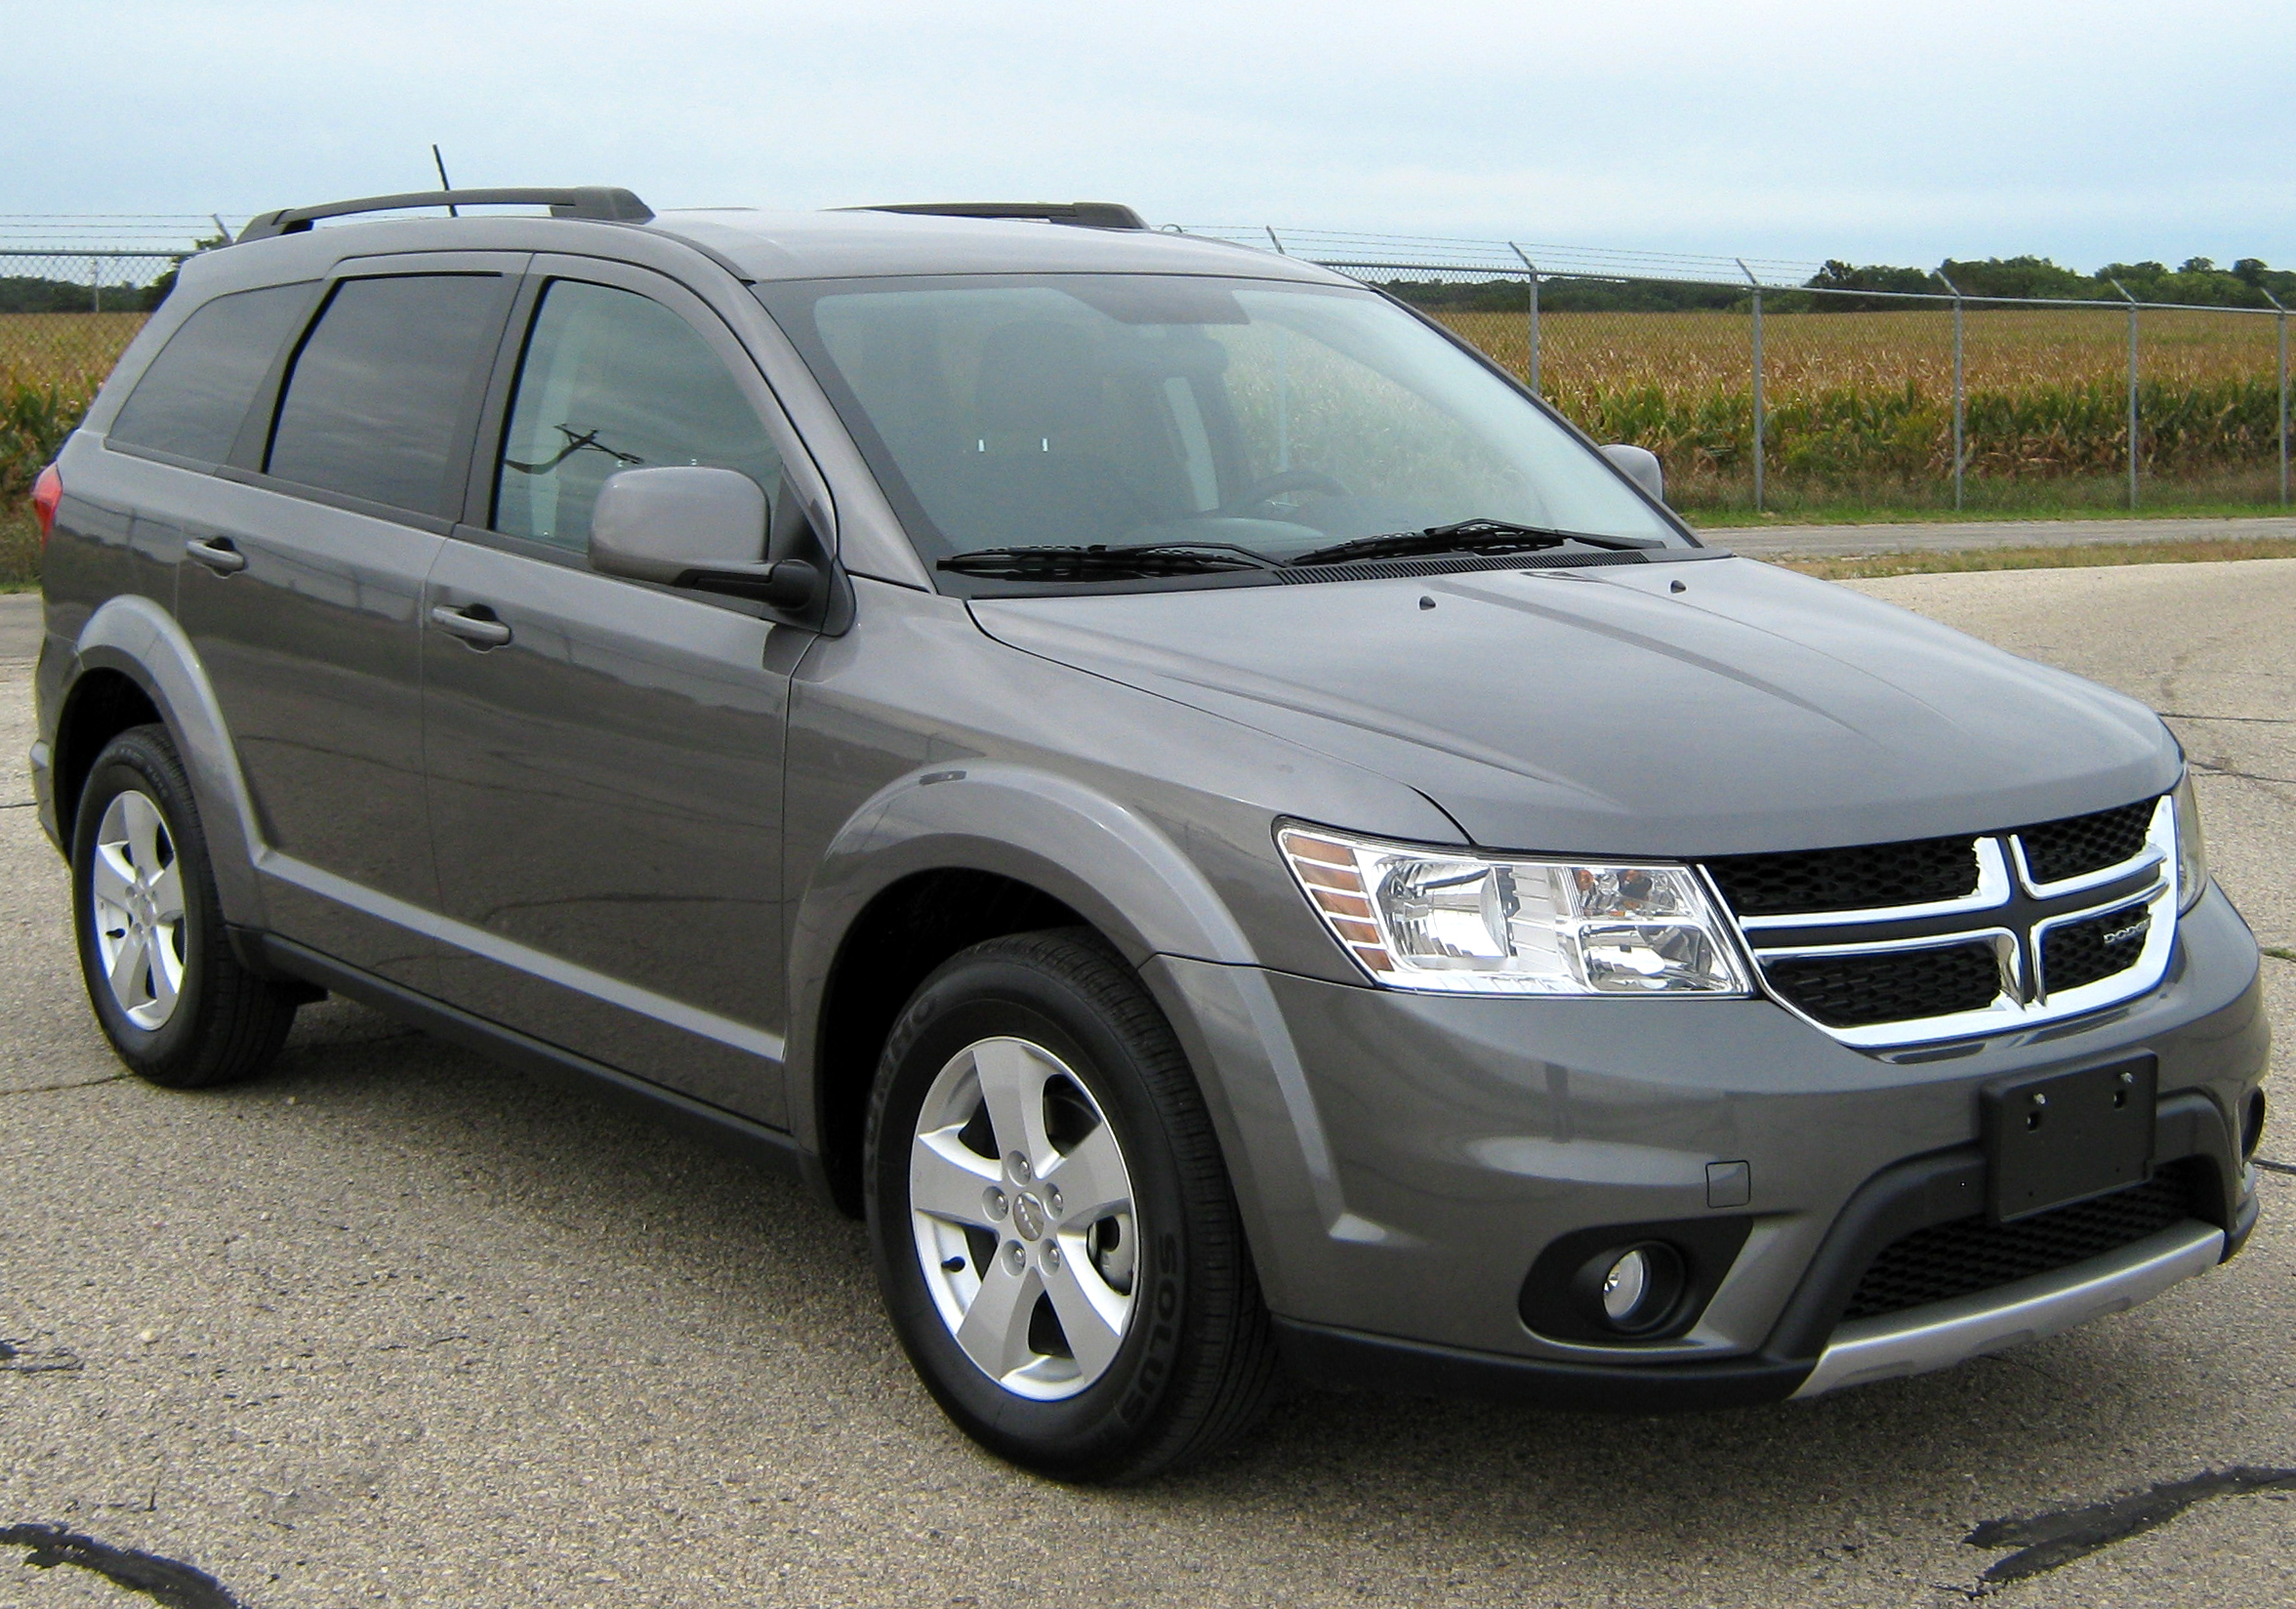 file dodge journey nhtsa jpg wikimedia commons